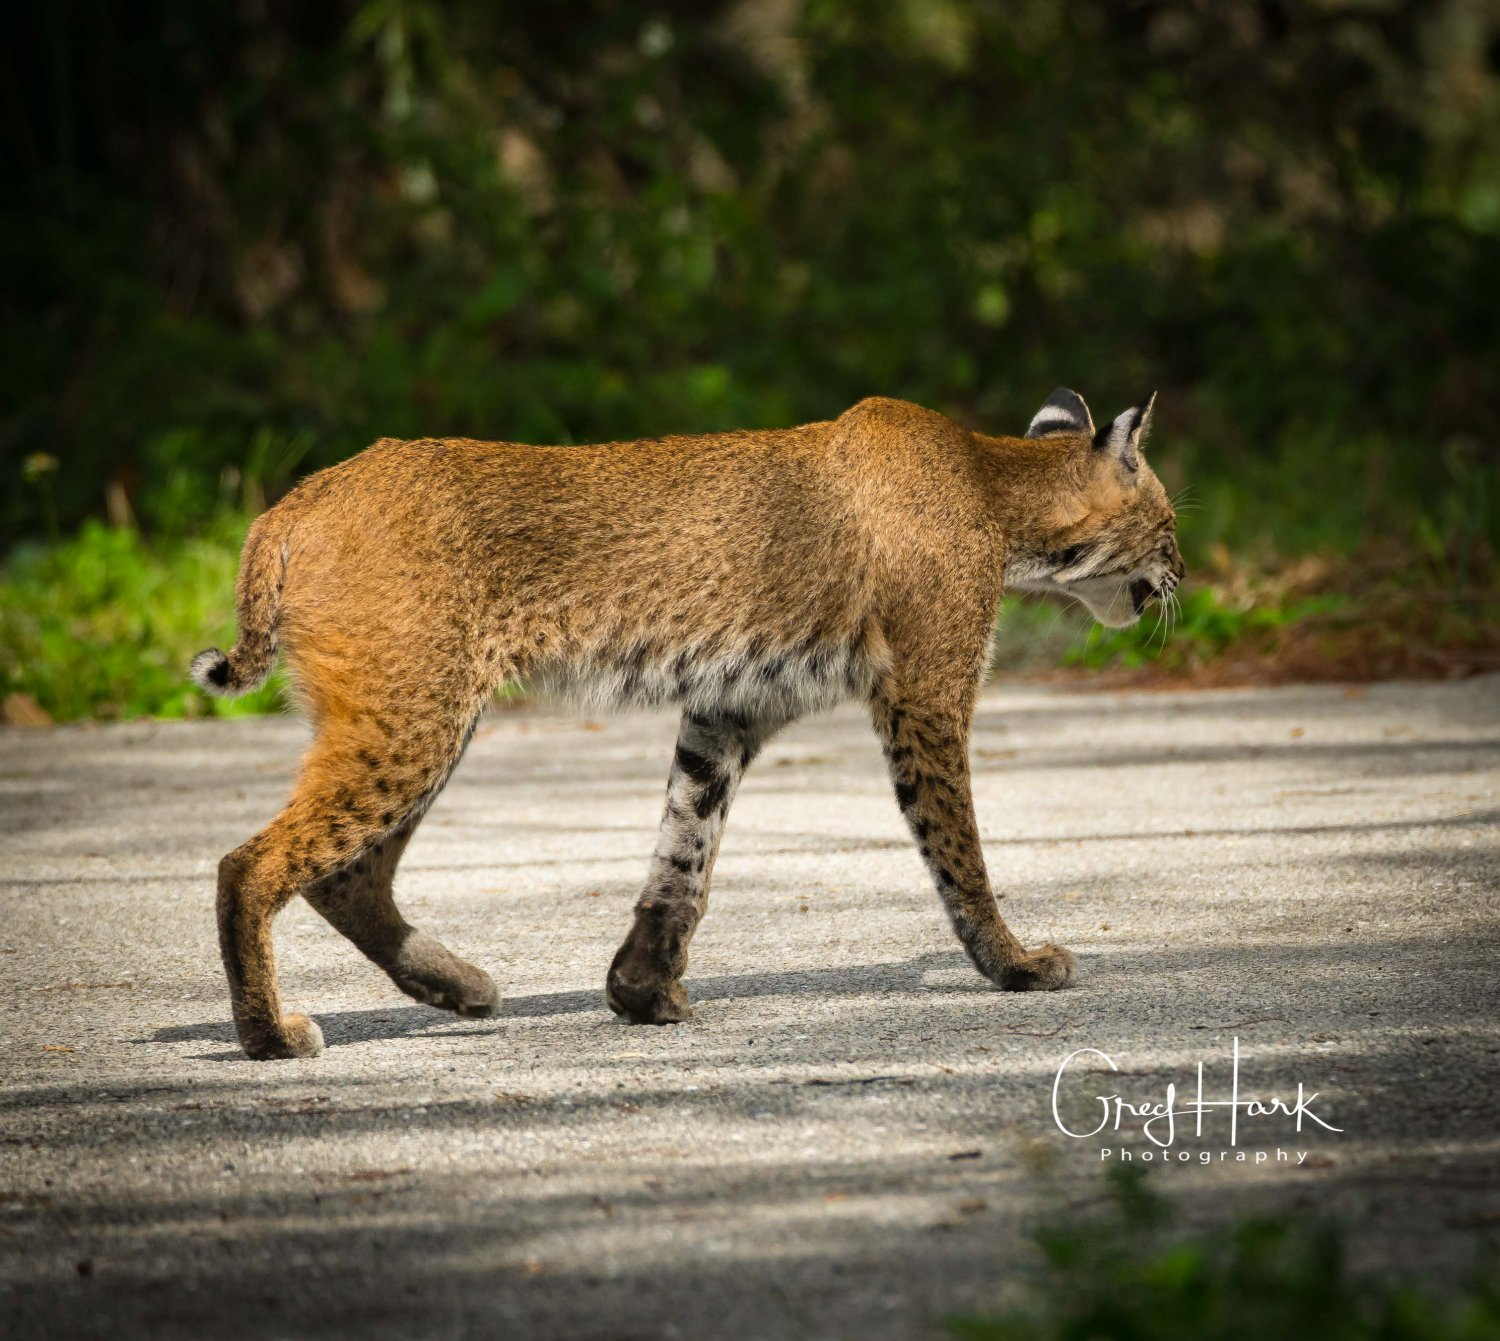 Bobcat, Loxahatchee National Wildlife Refuge Bob Cat, EVERGLADES CITY, Everglades-Loxahatchee-Bob-Cat, flowers, HURRICANE, Kayaking, Loxahatchee, sun, Sun Testing,